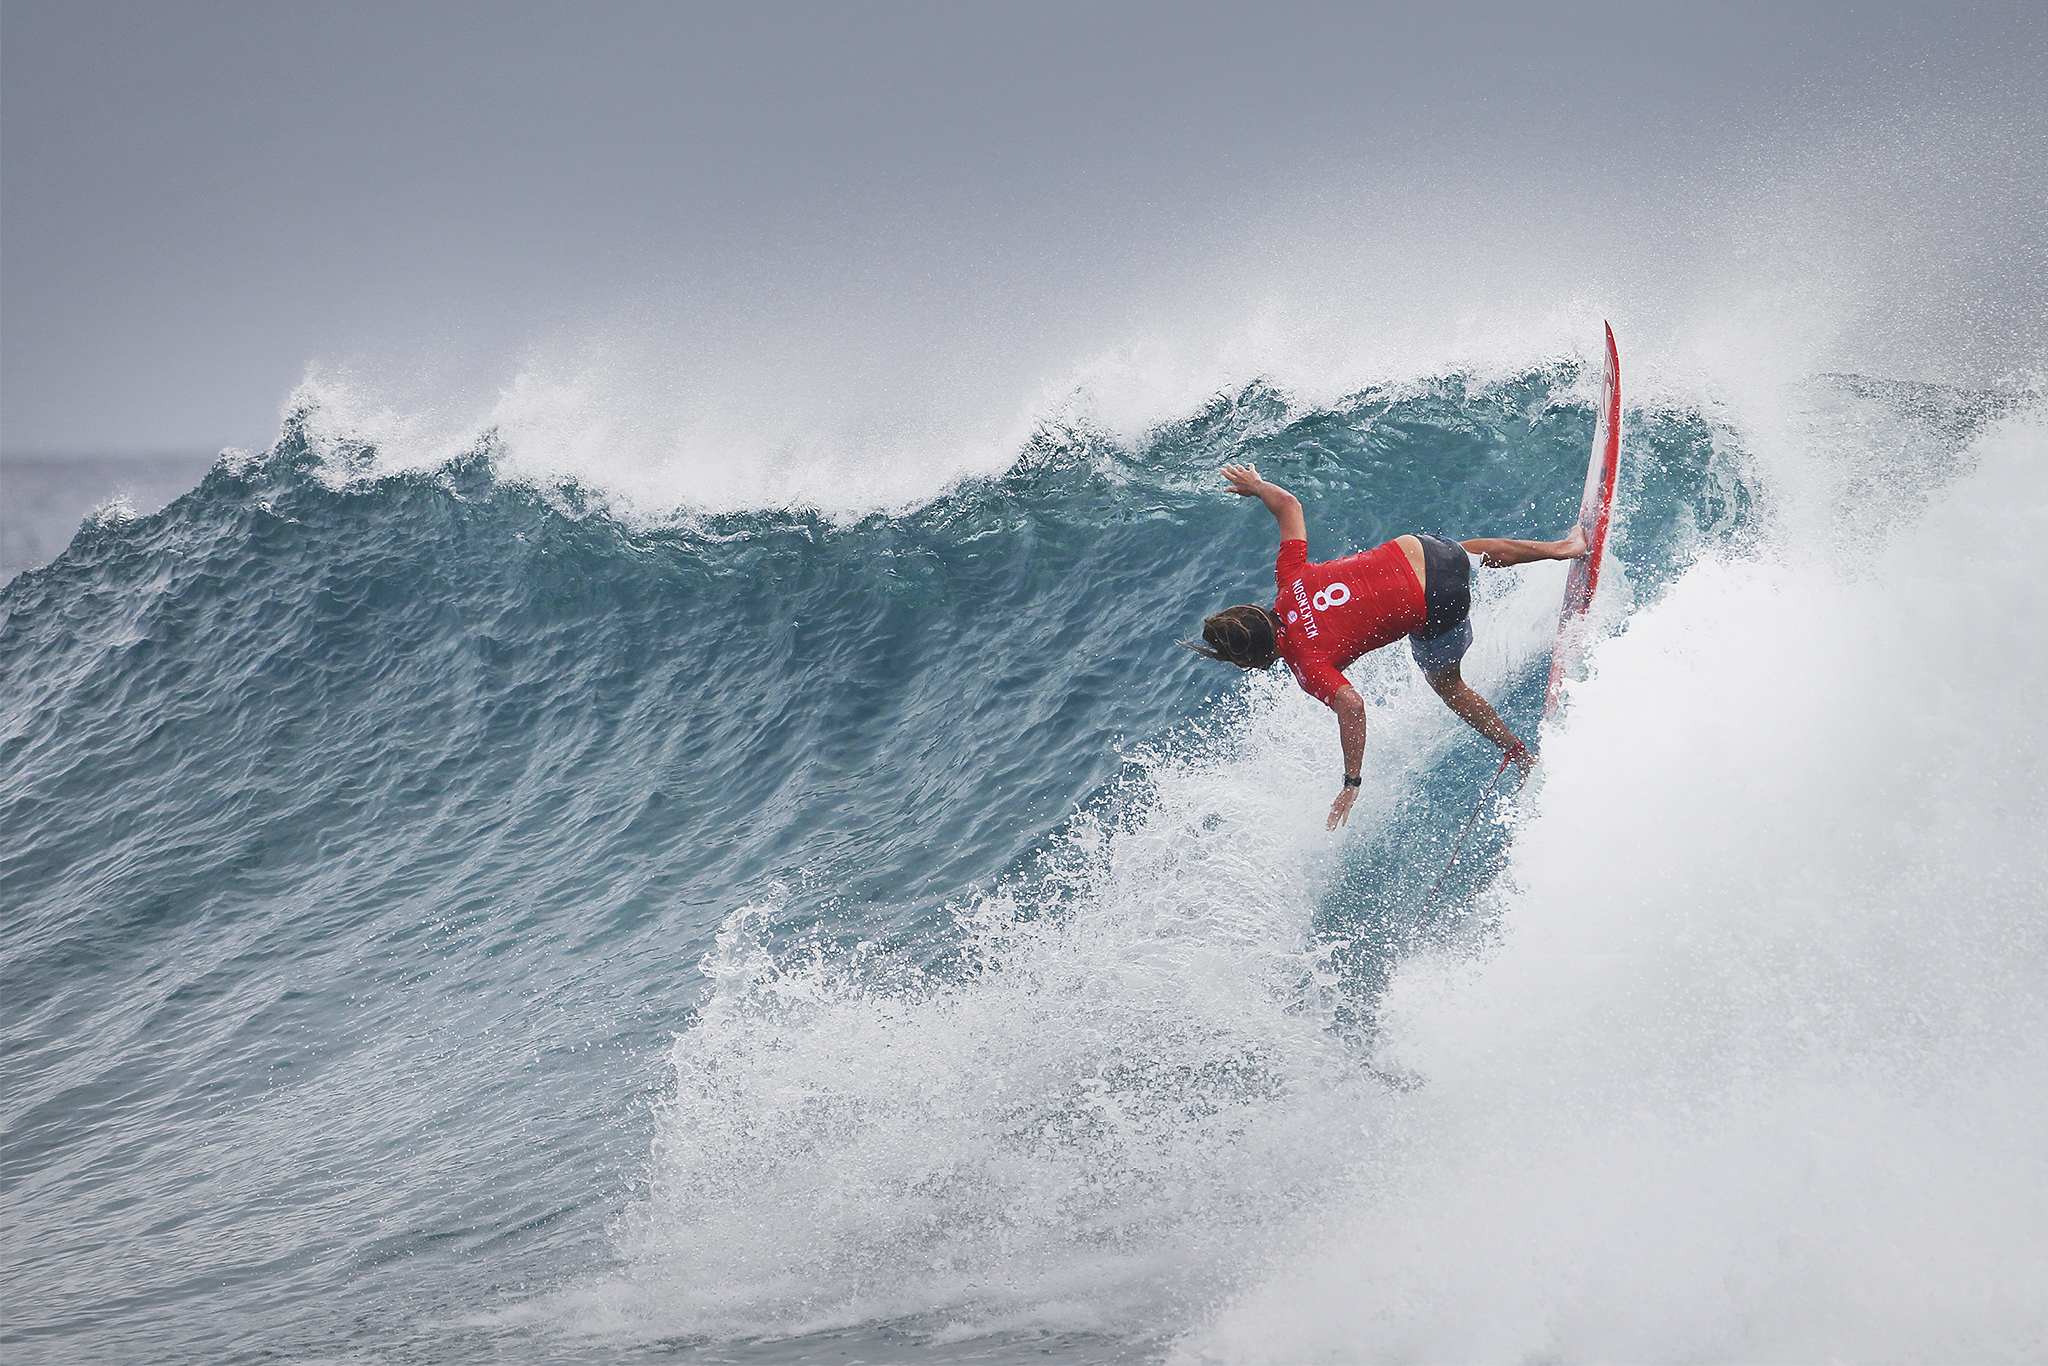 Matt Wilkinson of Australia (pictured) winning the Quiksilver Pro Gold Coast on Wednesday March 16, 2016. PHOTO CREDIT: © WSL / Kirstin This is a hand-out image from the World Surf League and is royalty free for editorial use only, no commercial rights granted. The copyright is owned by World Surf League. Sale or license of the images is prohibited. ALL RIGHTS RESERVED.